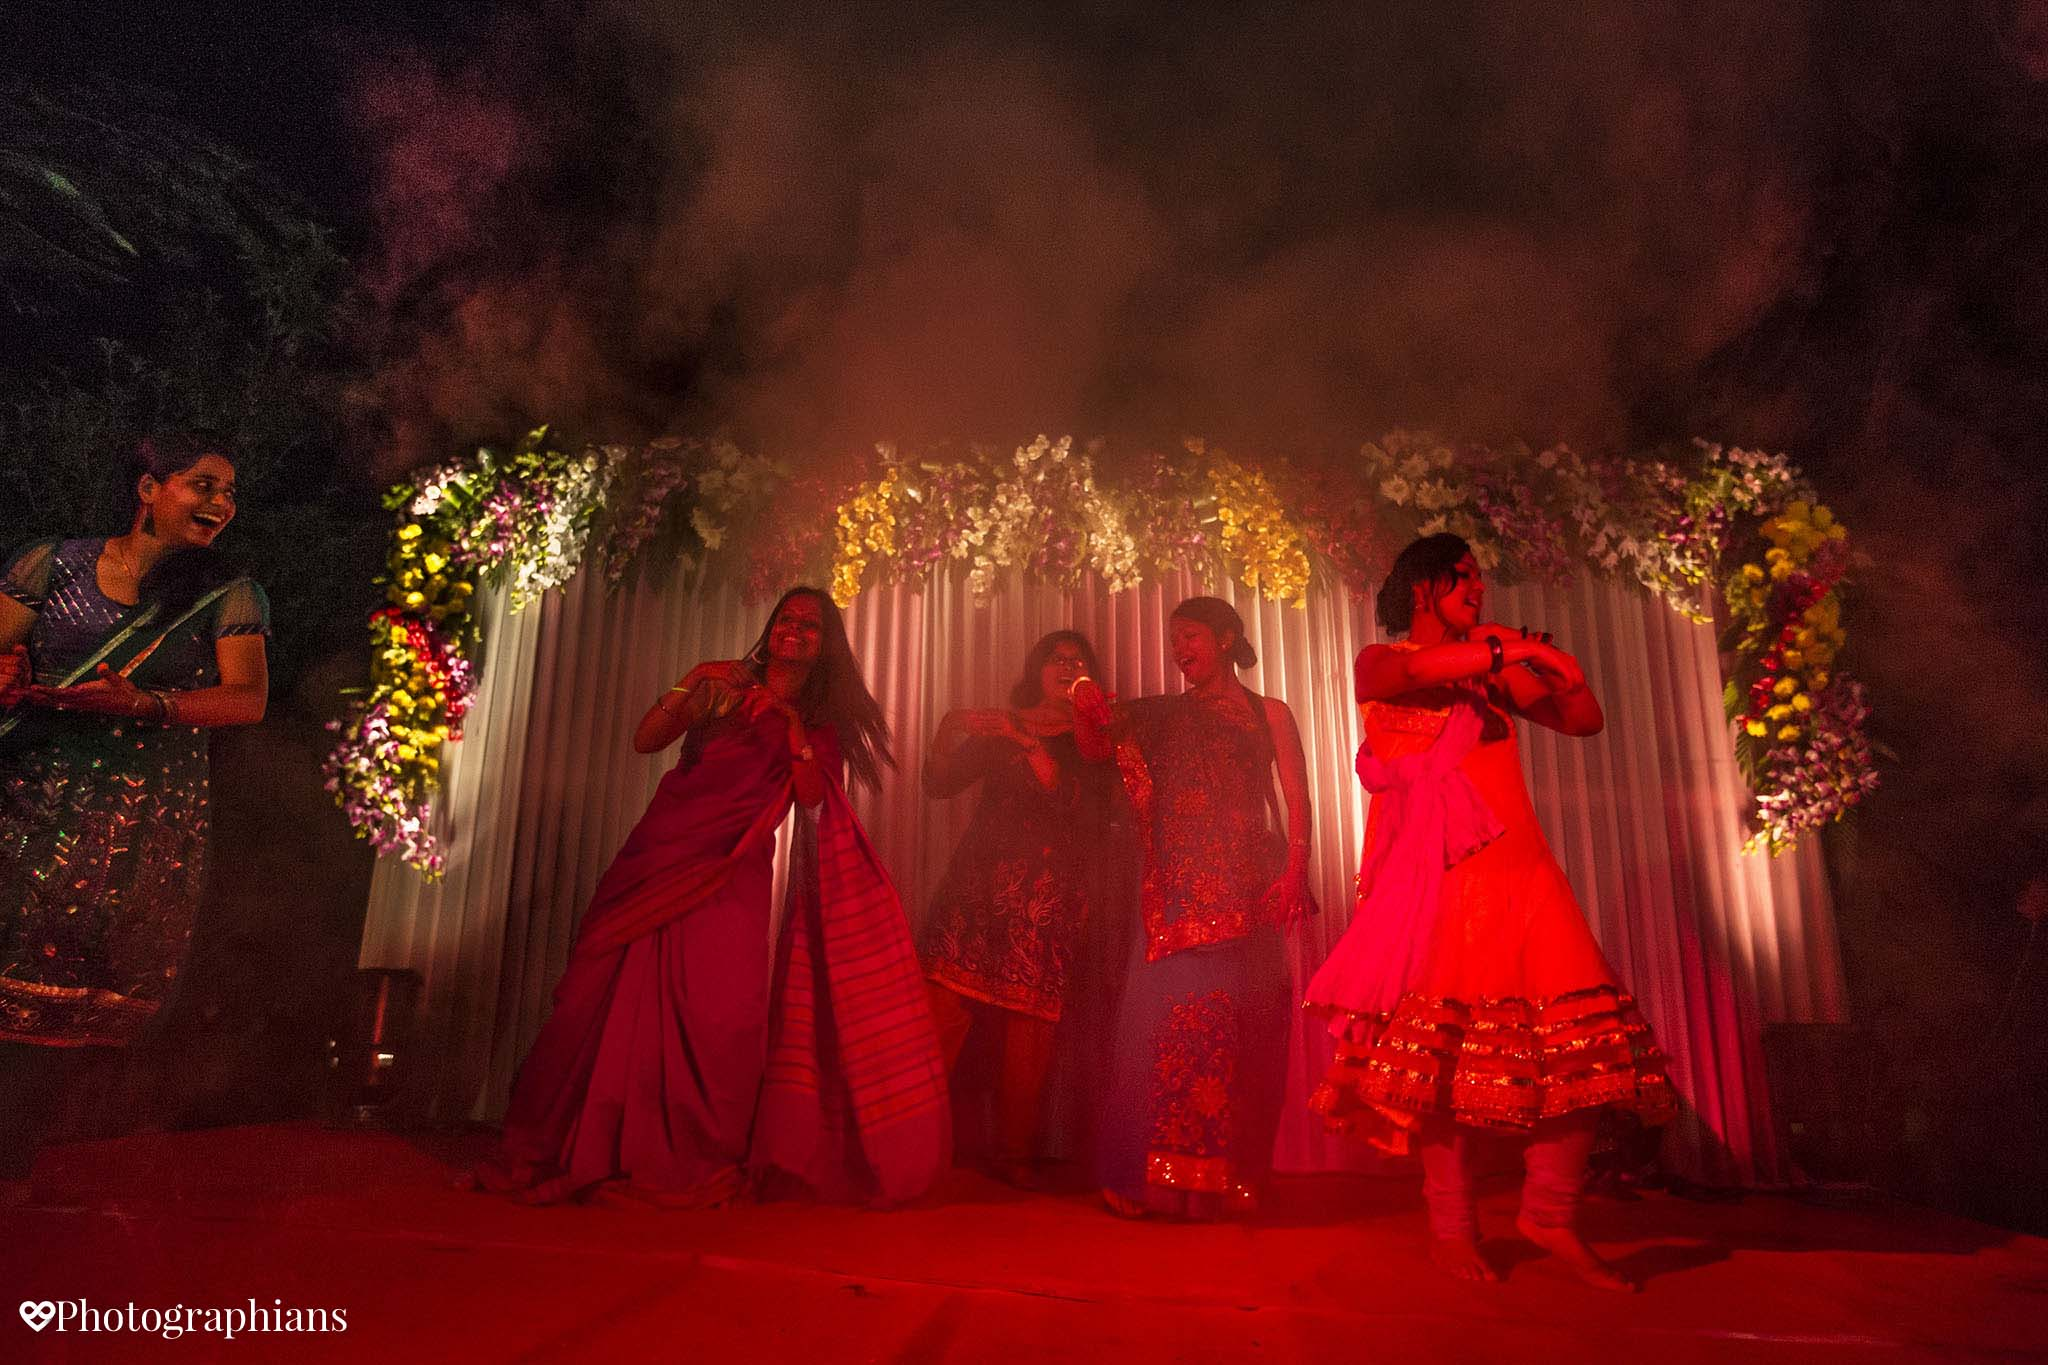 Photographians_Indian_Destination_Wedding_138